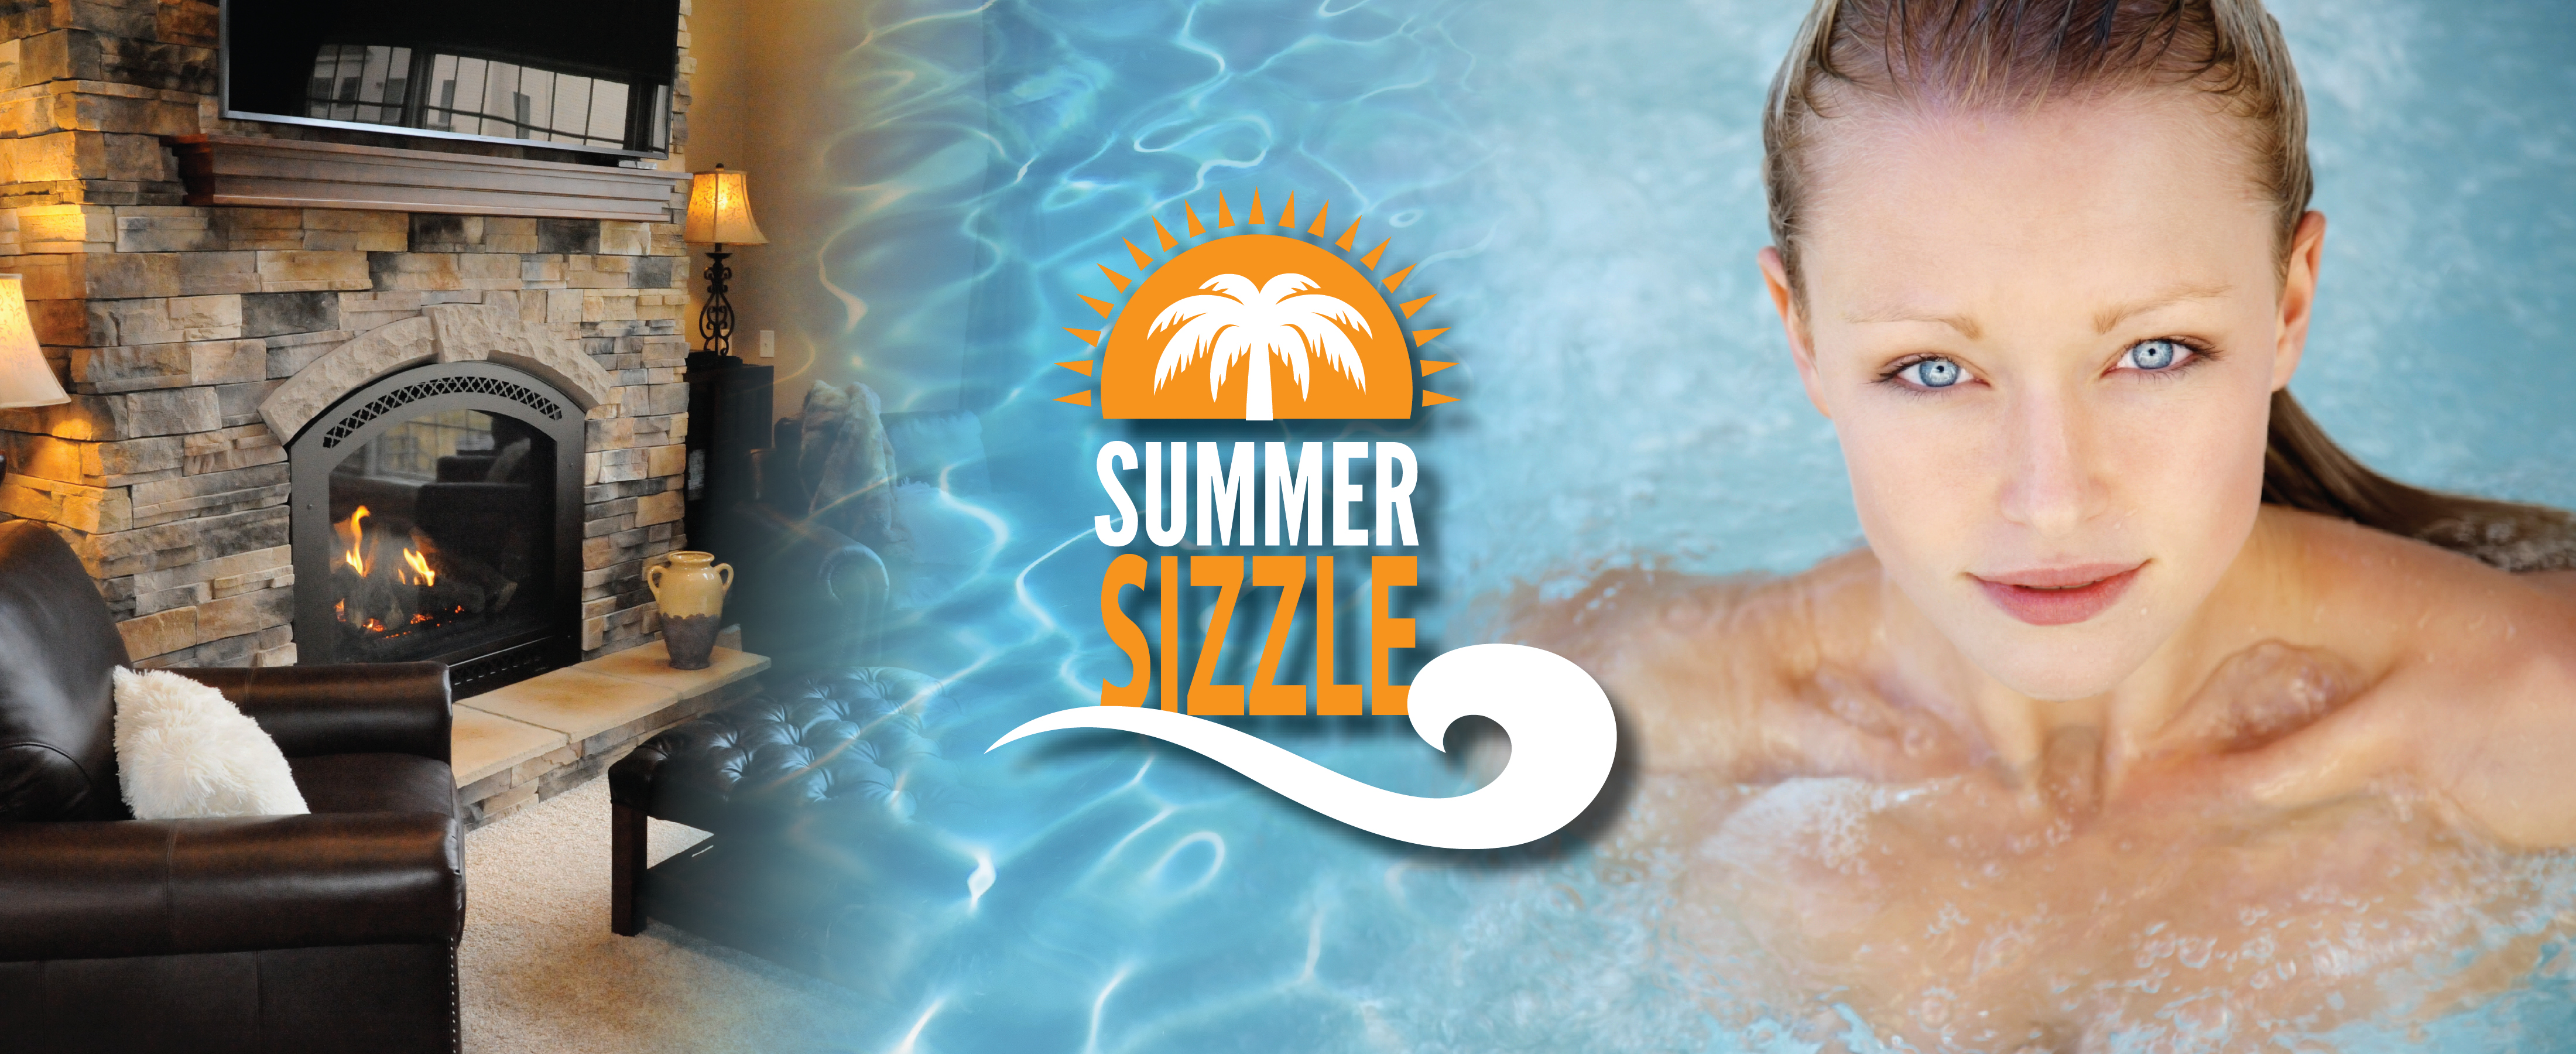 Summer Sizzle Sale at The Place in Medina